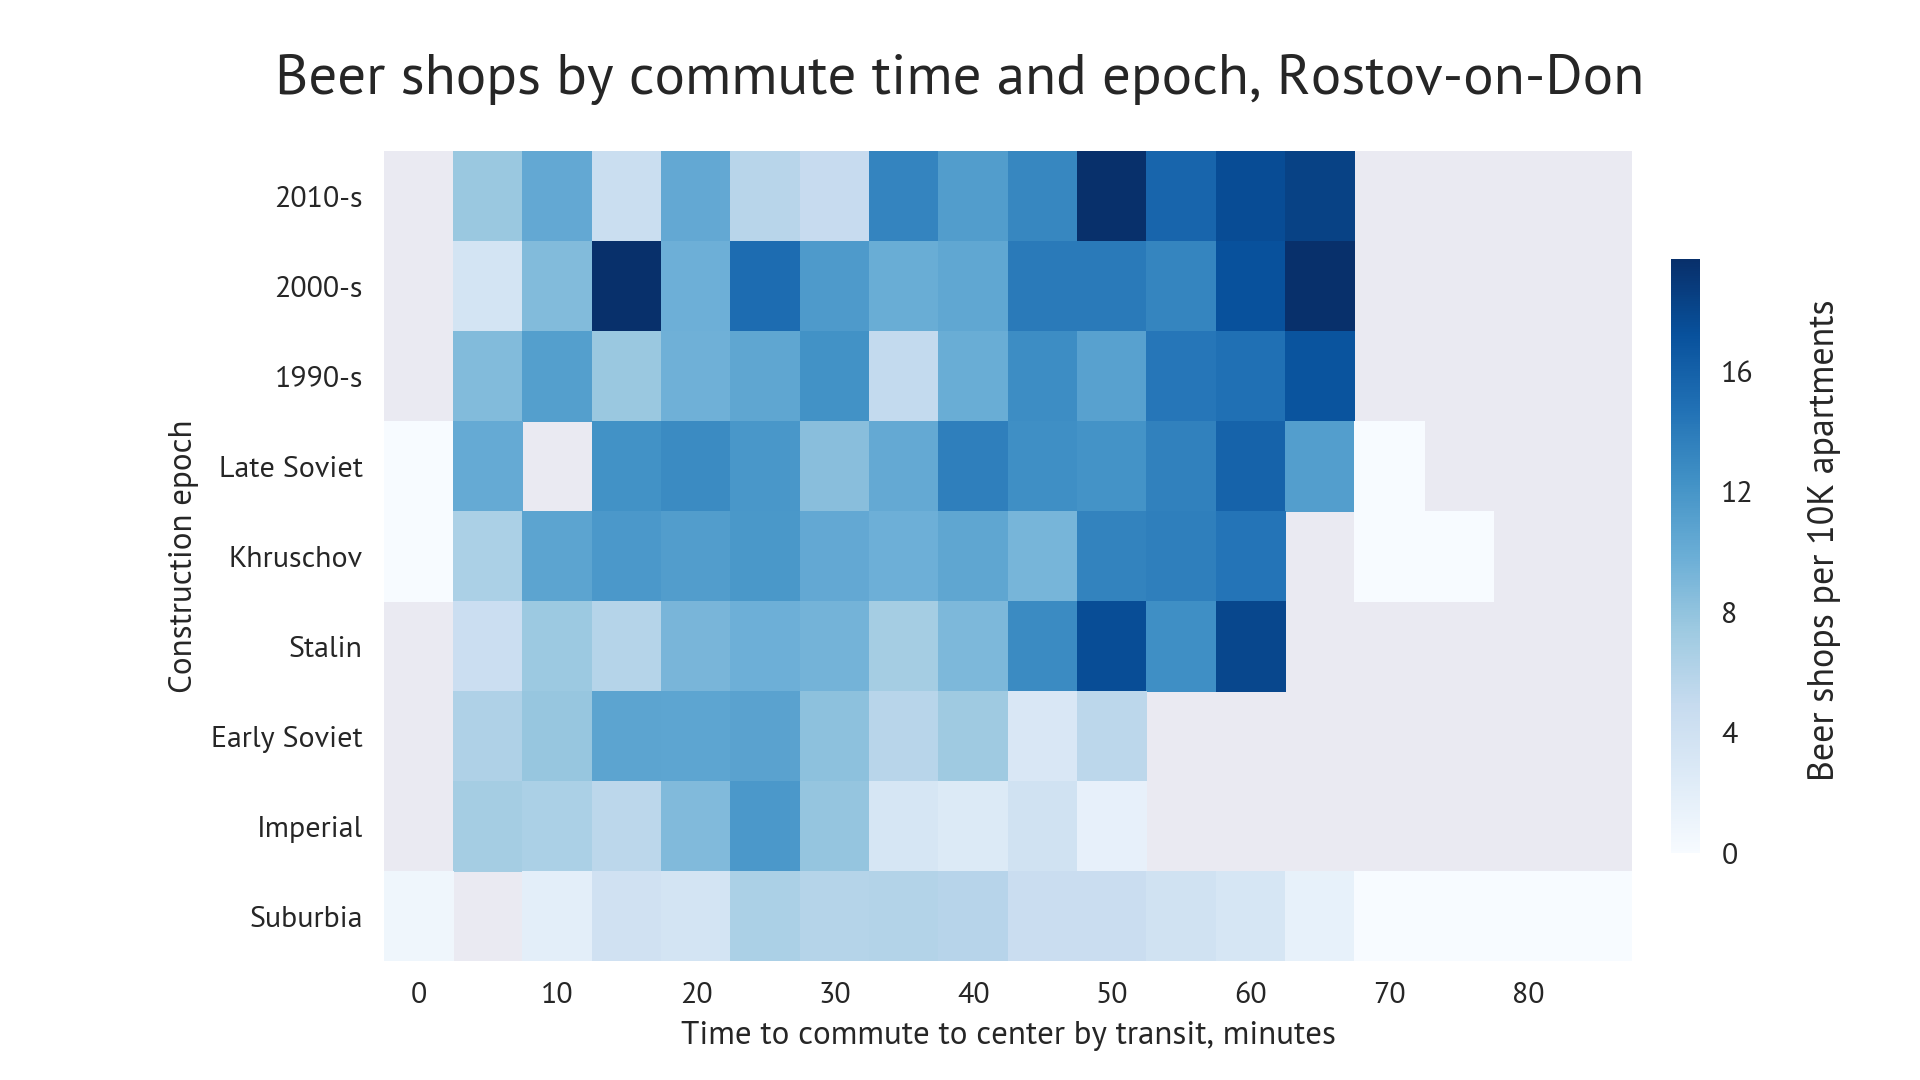 Chart: Beershops diffusion by commute time and construction epoch. Rostov-on-Don